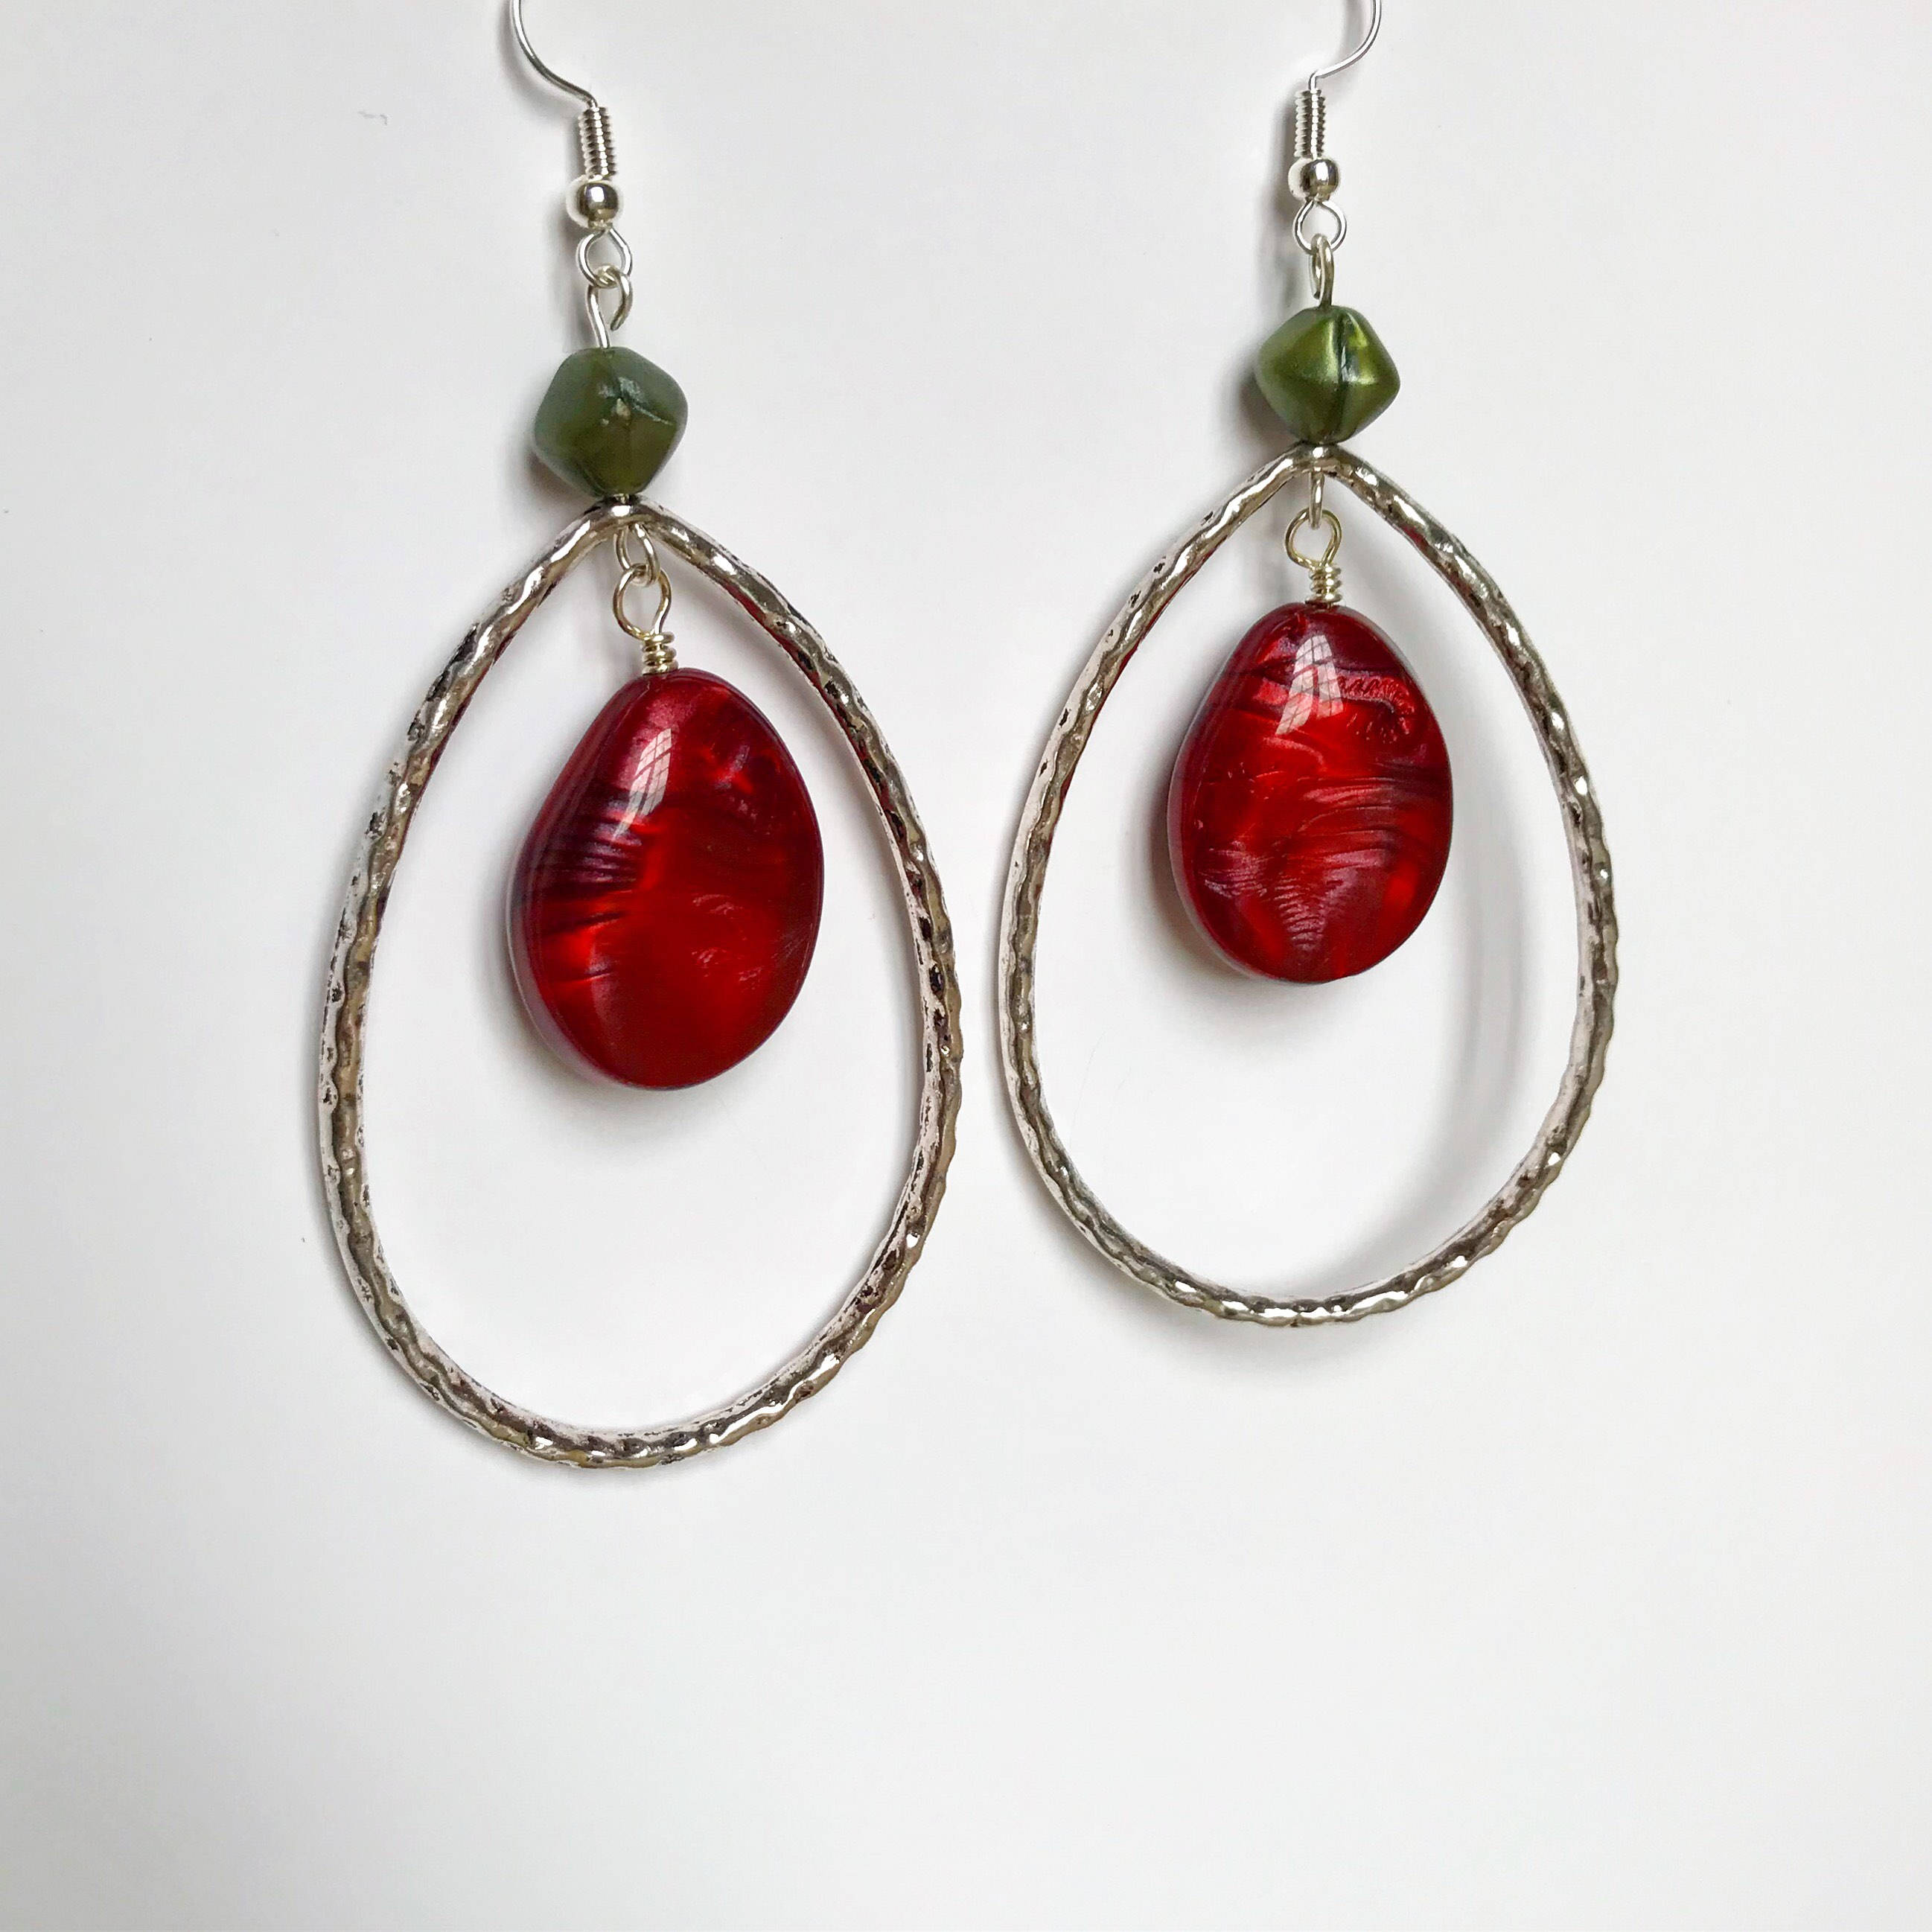 Red green and tibetan silver chandelier earrings sterling silver red green and tibetan silver chandelier earrings sterling silver earrings bohemian earrings gift for her recycled earrings mozeypictures Gallery